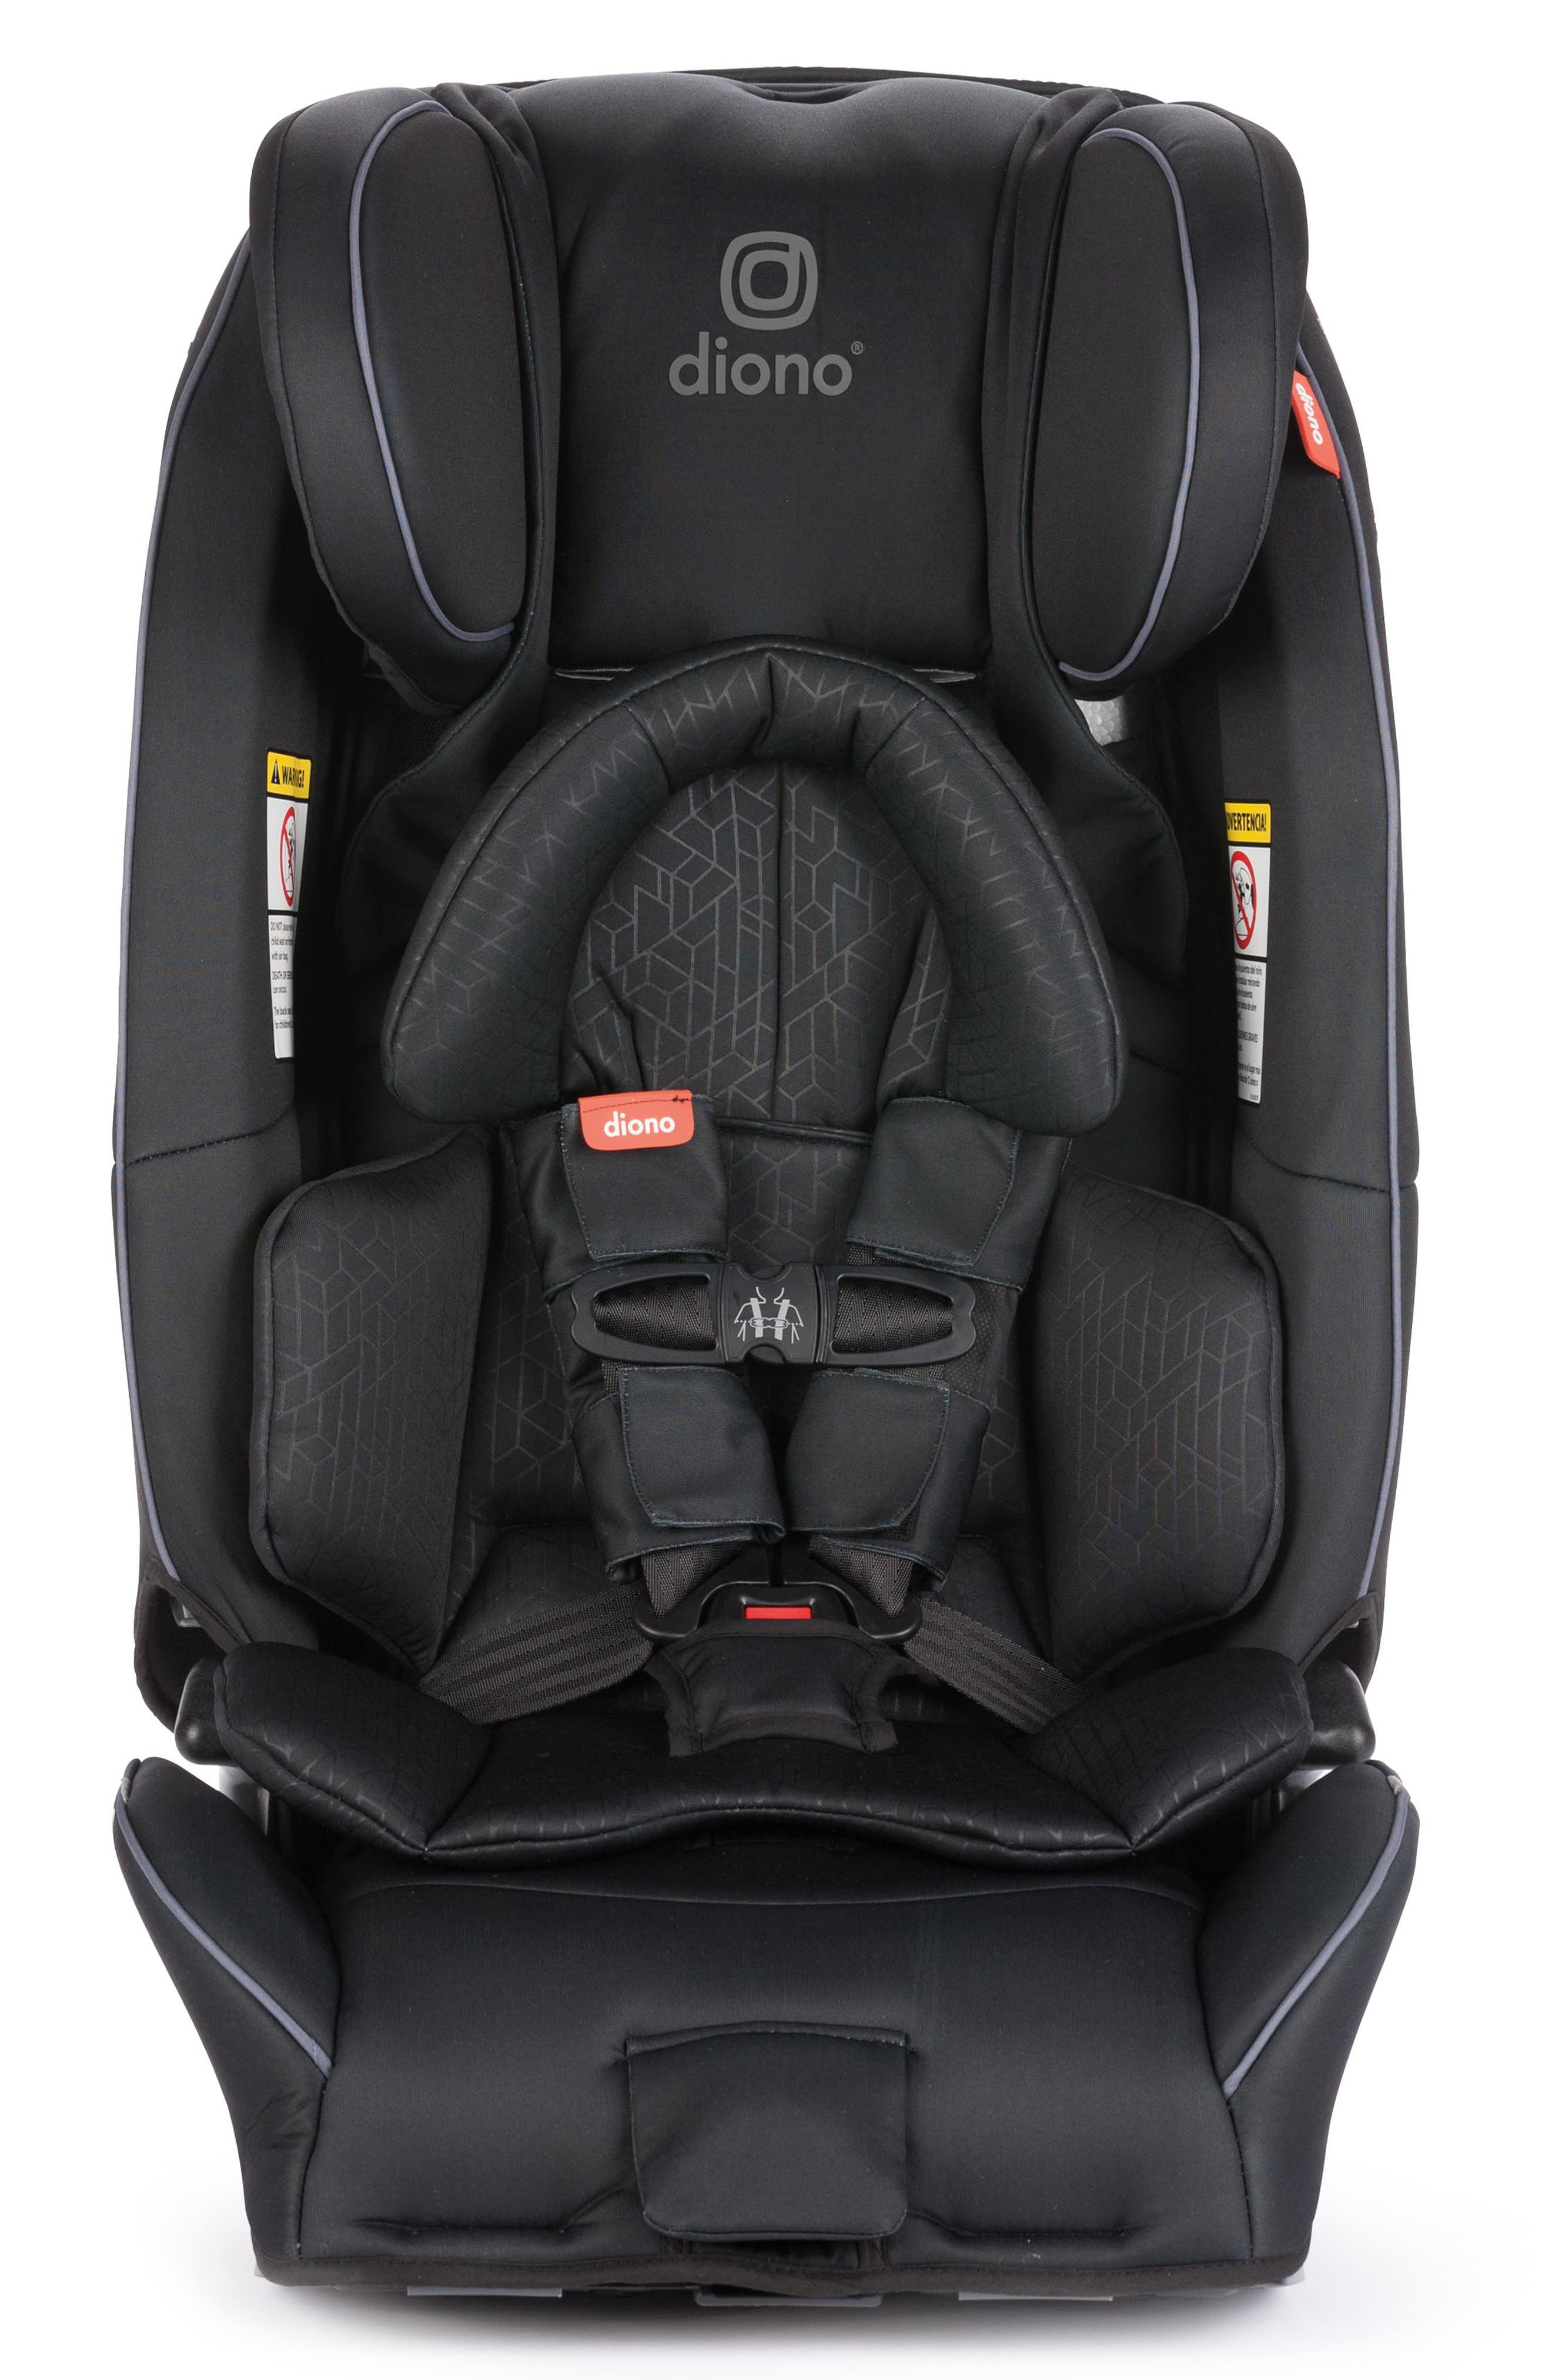 DIONO radian<sup>®</sup> 3 rXT Rear & Forward Facing Car Seat, Main, color, BLACK